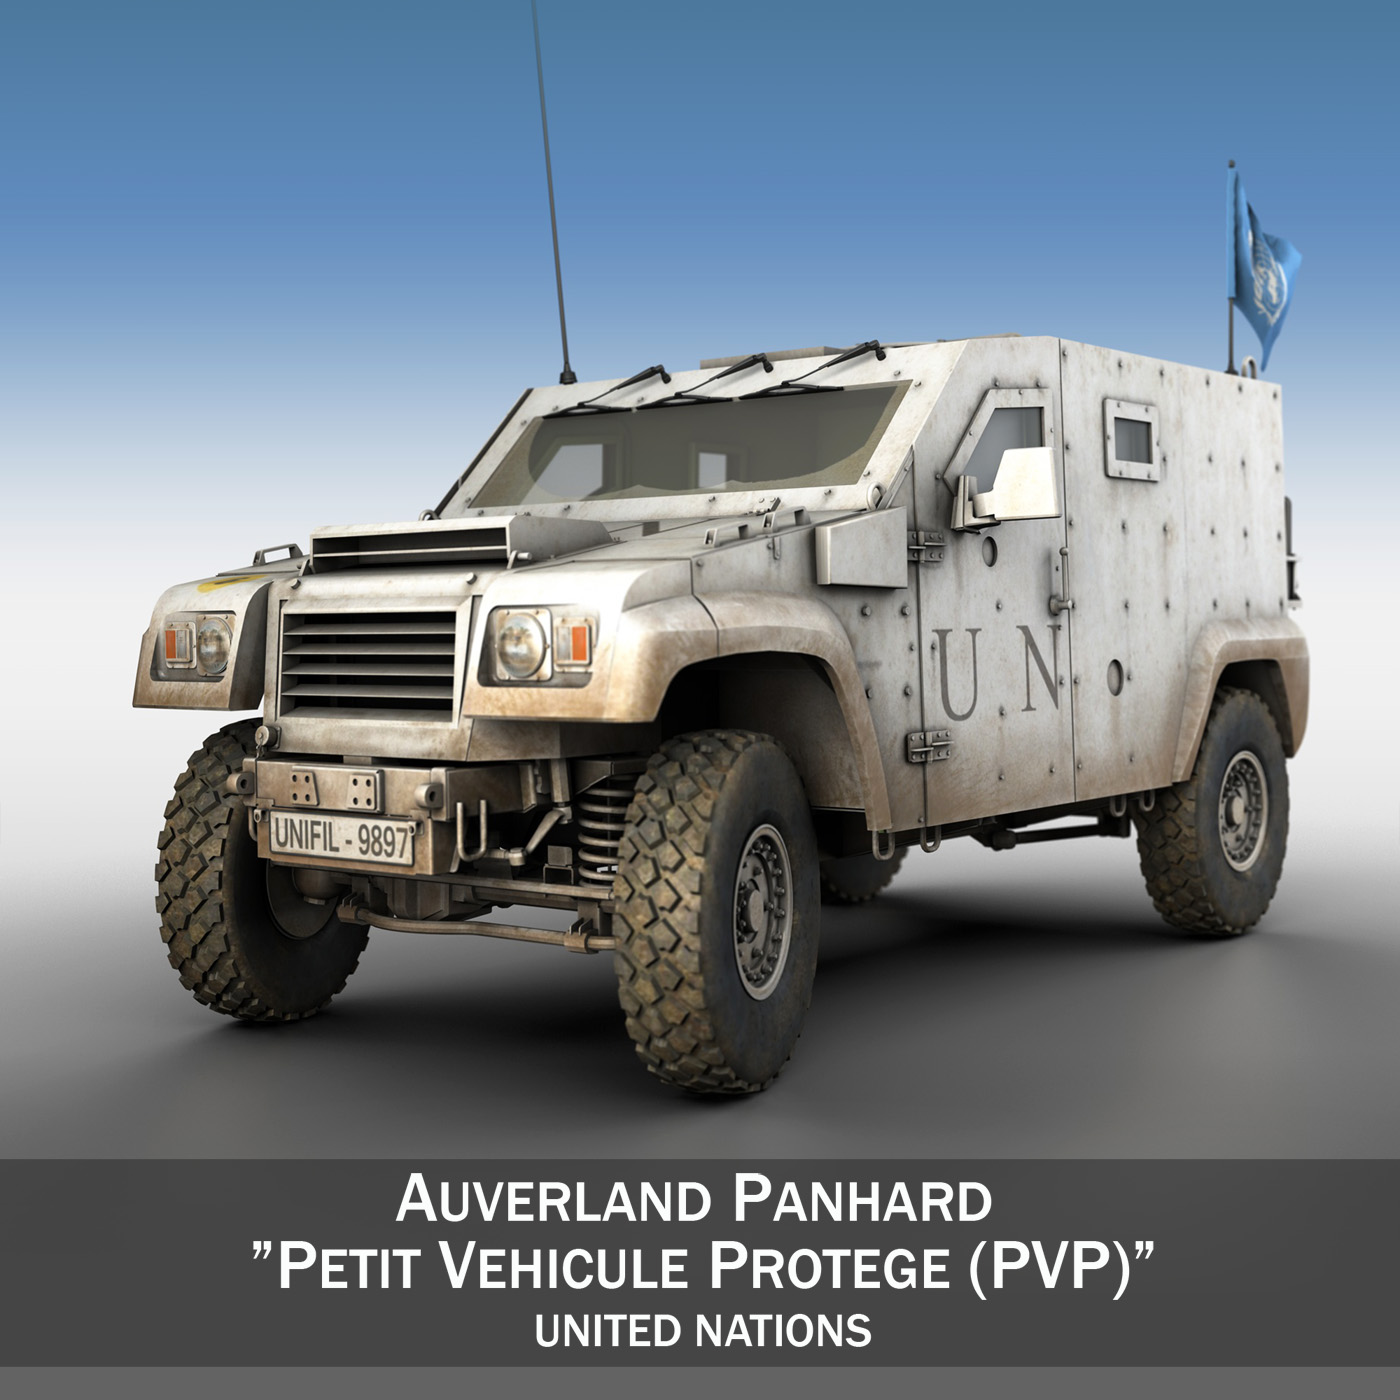 auverland panhard pvp – united nations 3d model 3ds fbx c4d lwo obj 190102